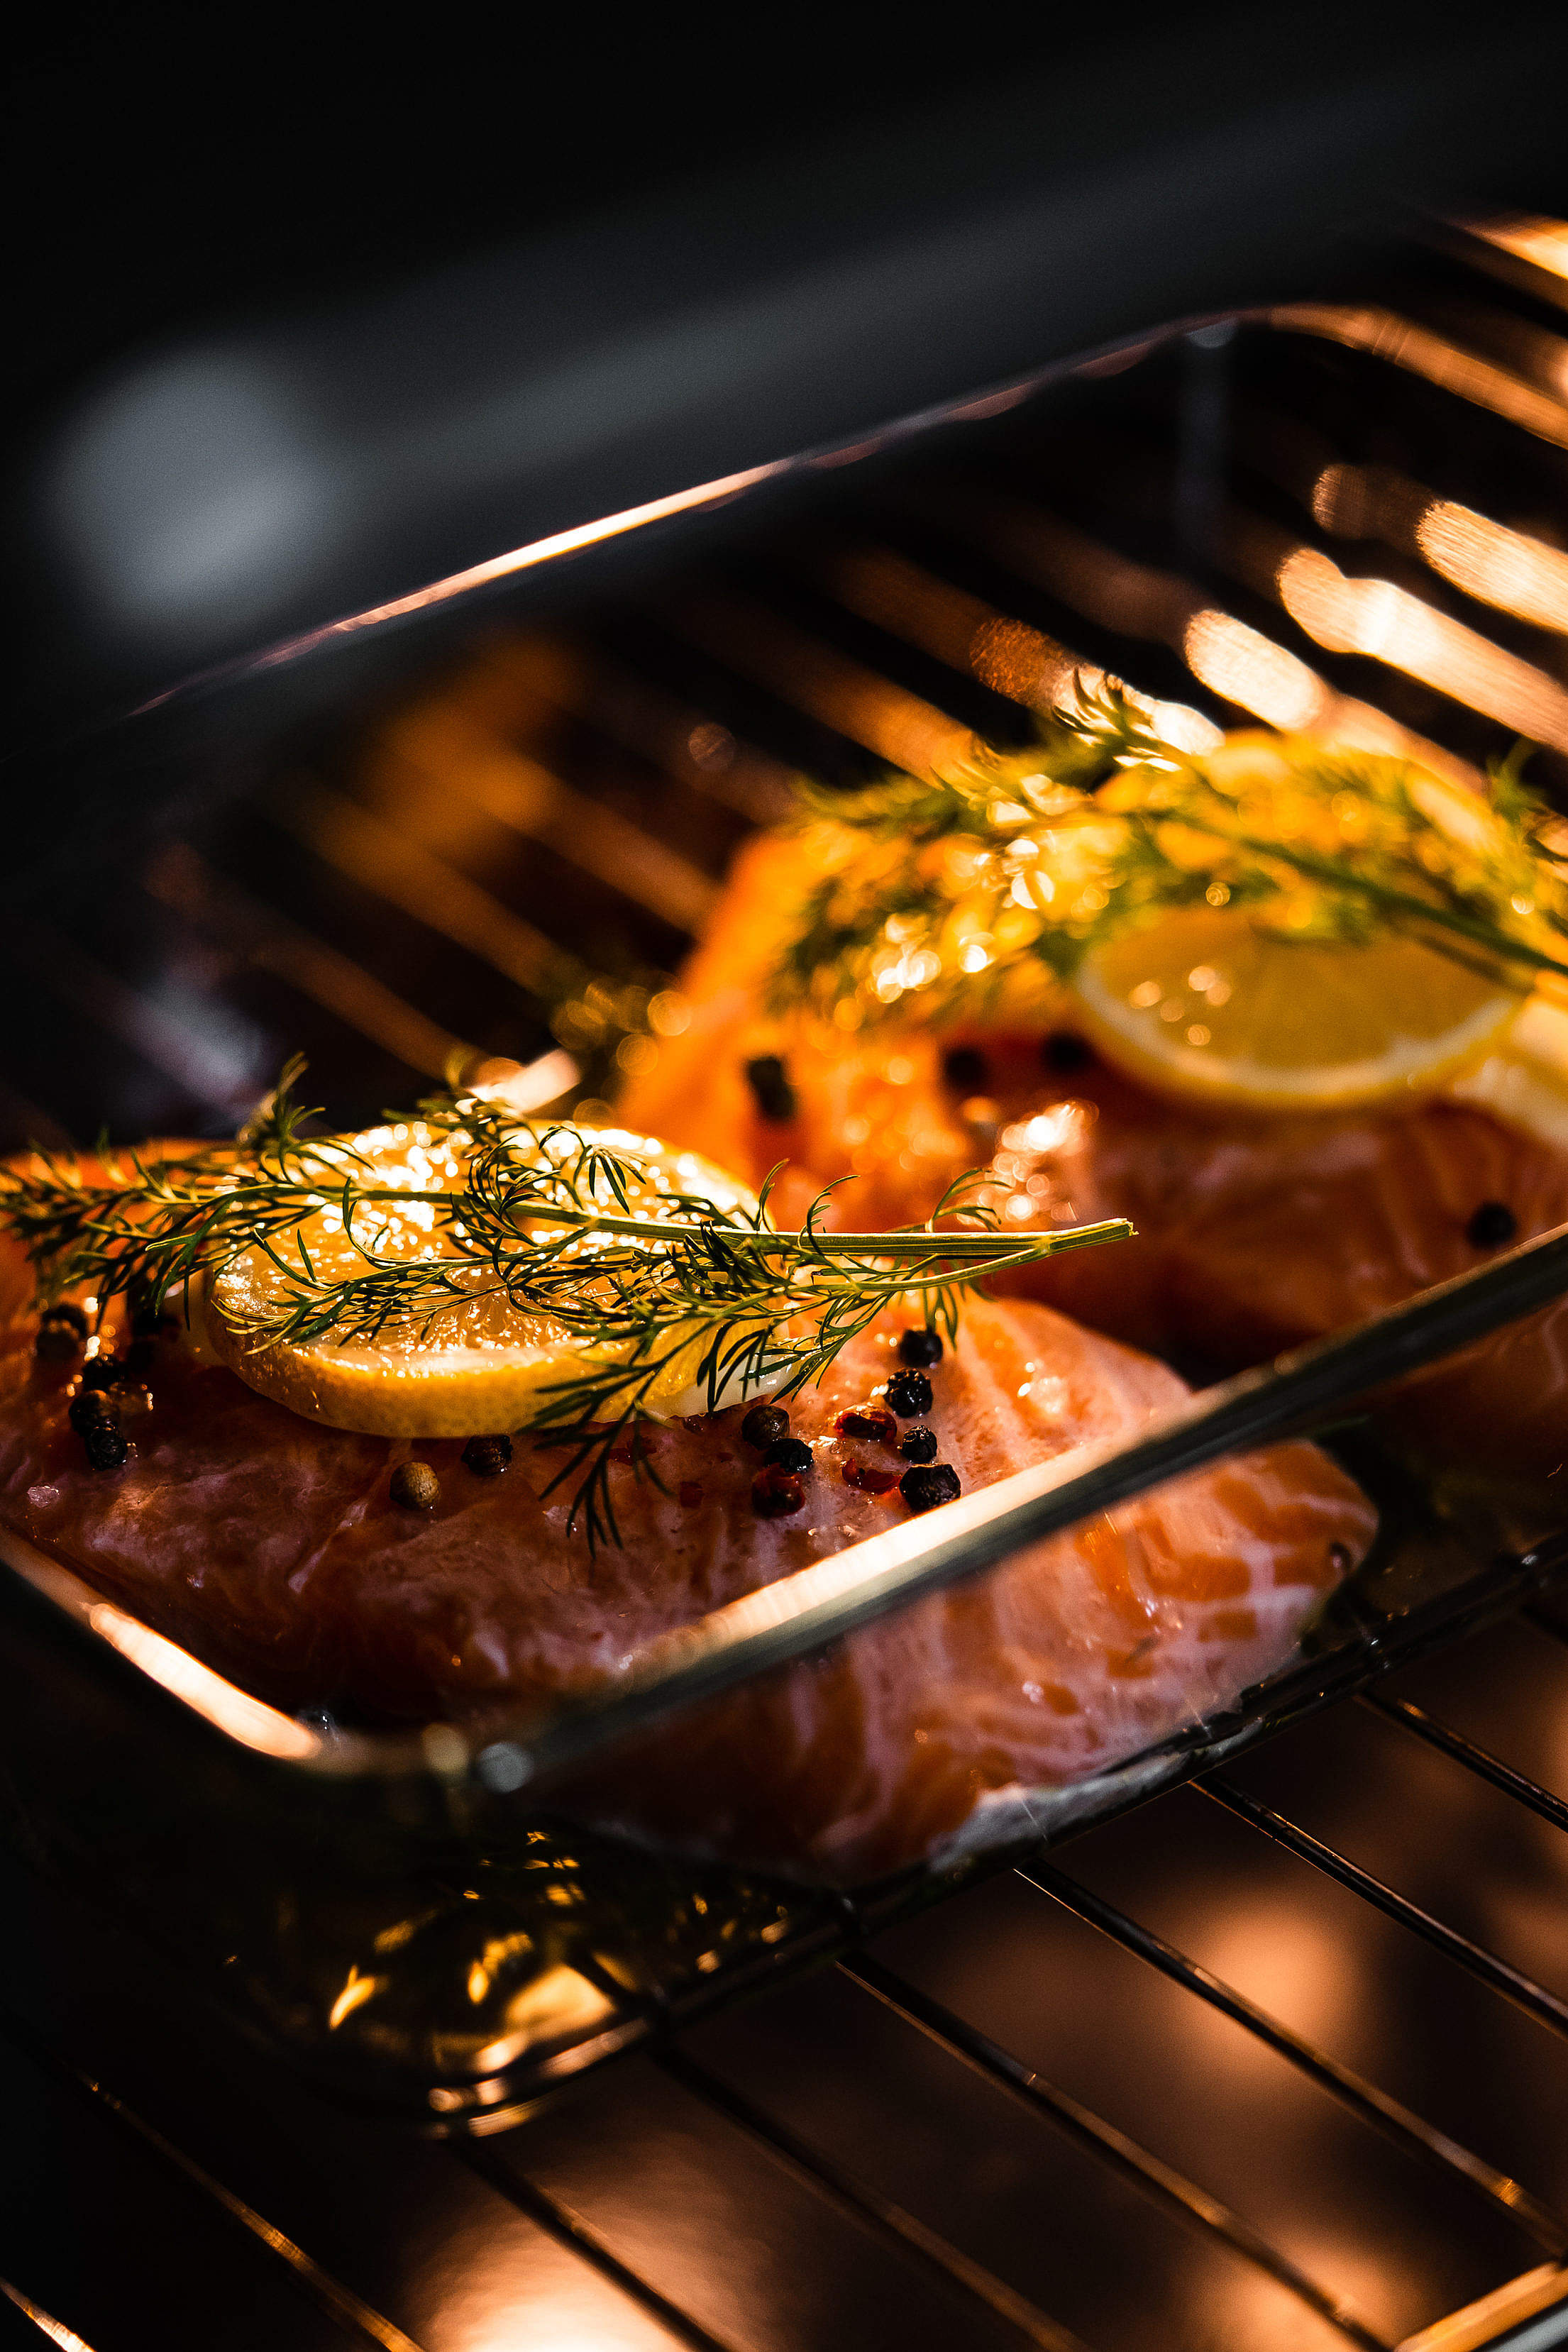 Oven Baking Salmon Fillets Free Stock Photo